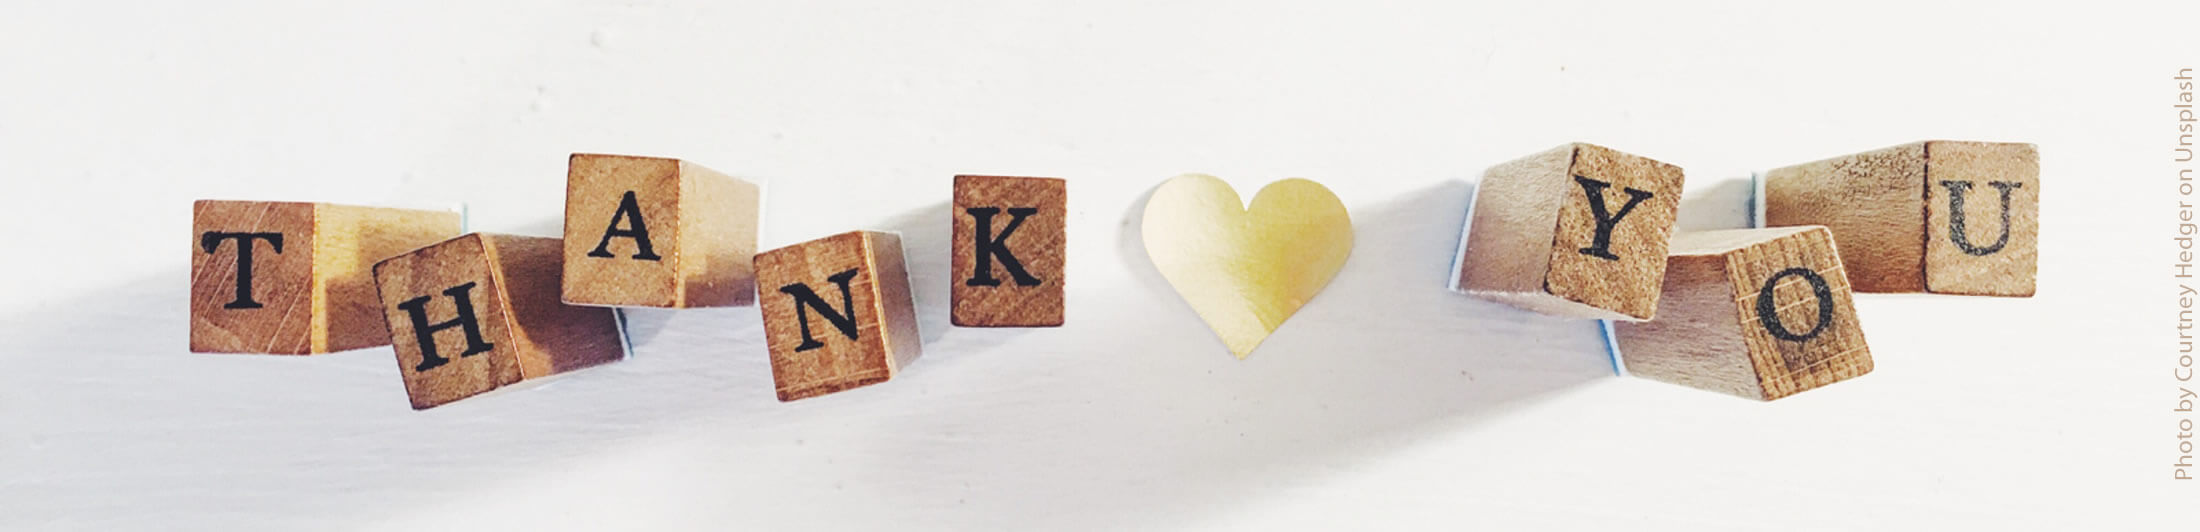 Wooden blocks with the letters THANK YOU with a gold heart in the middle